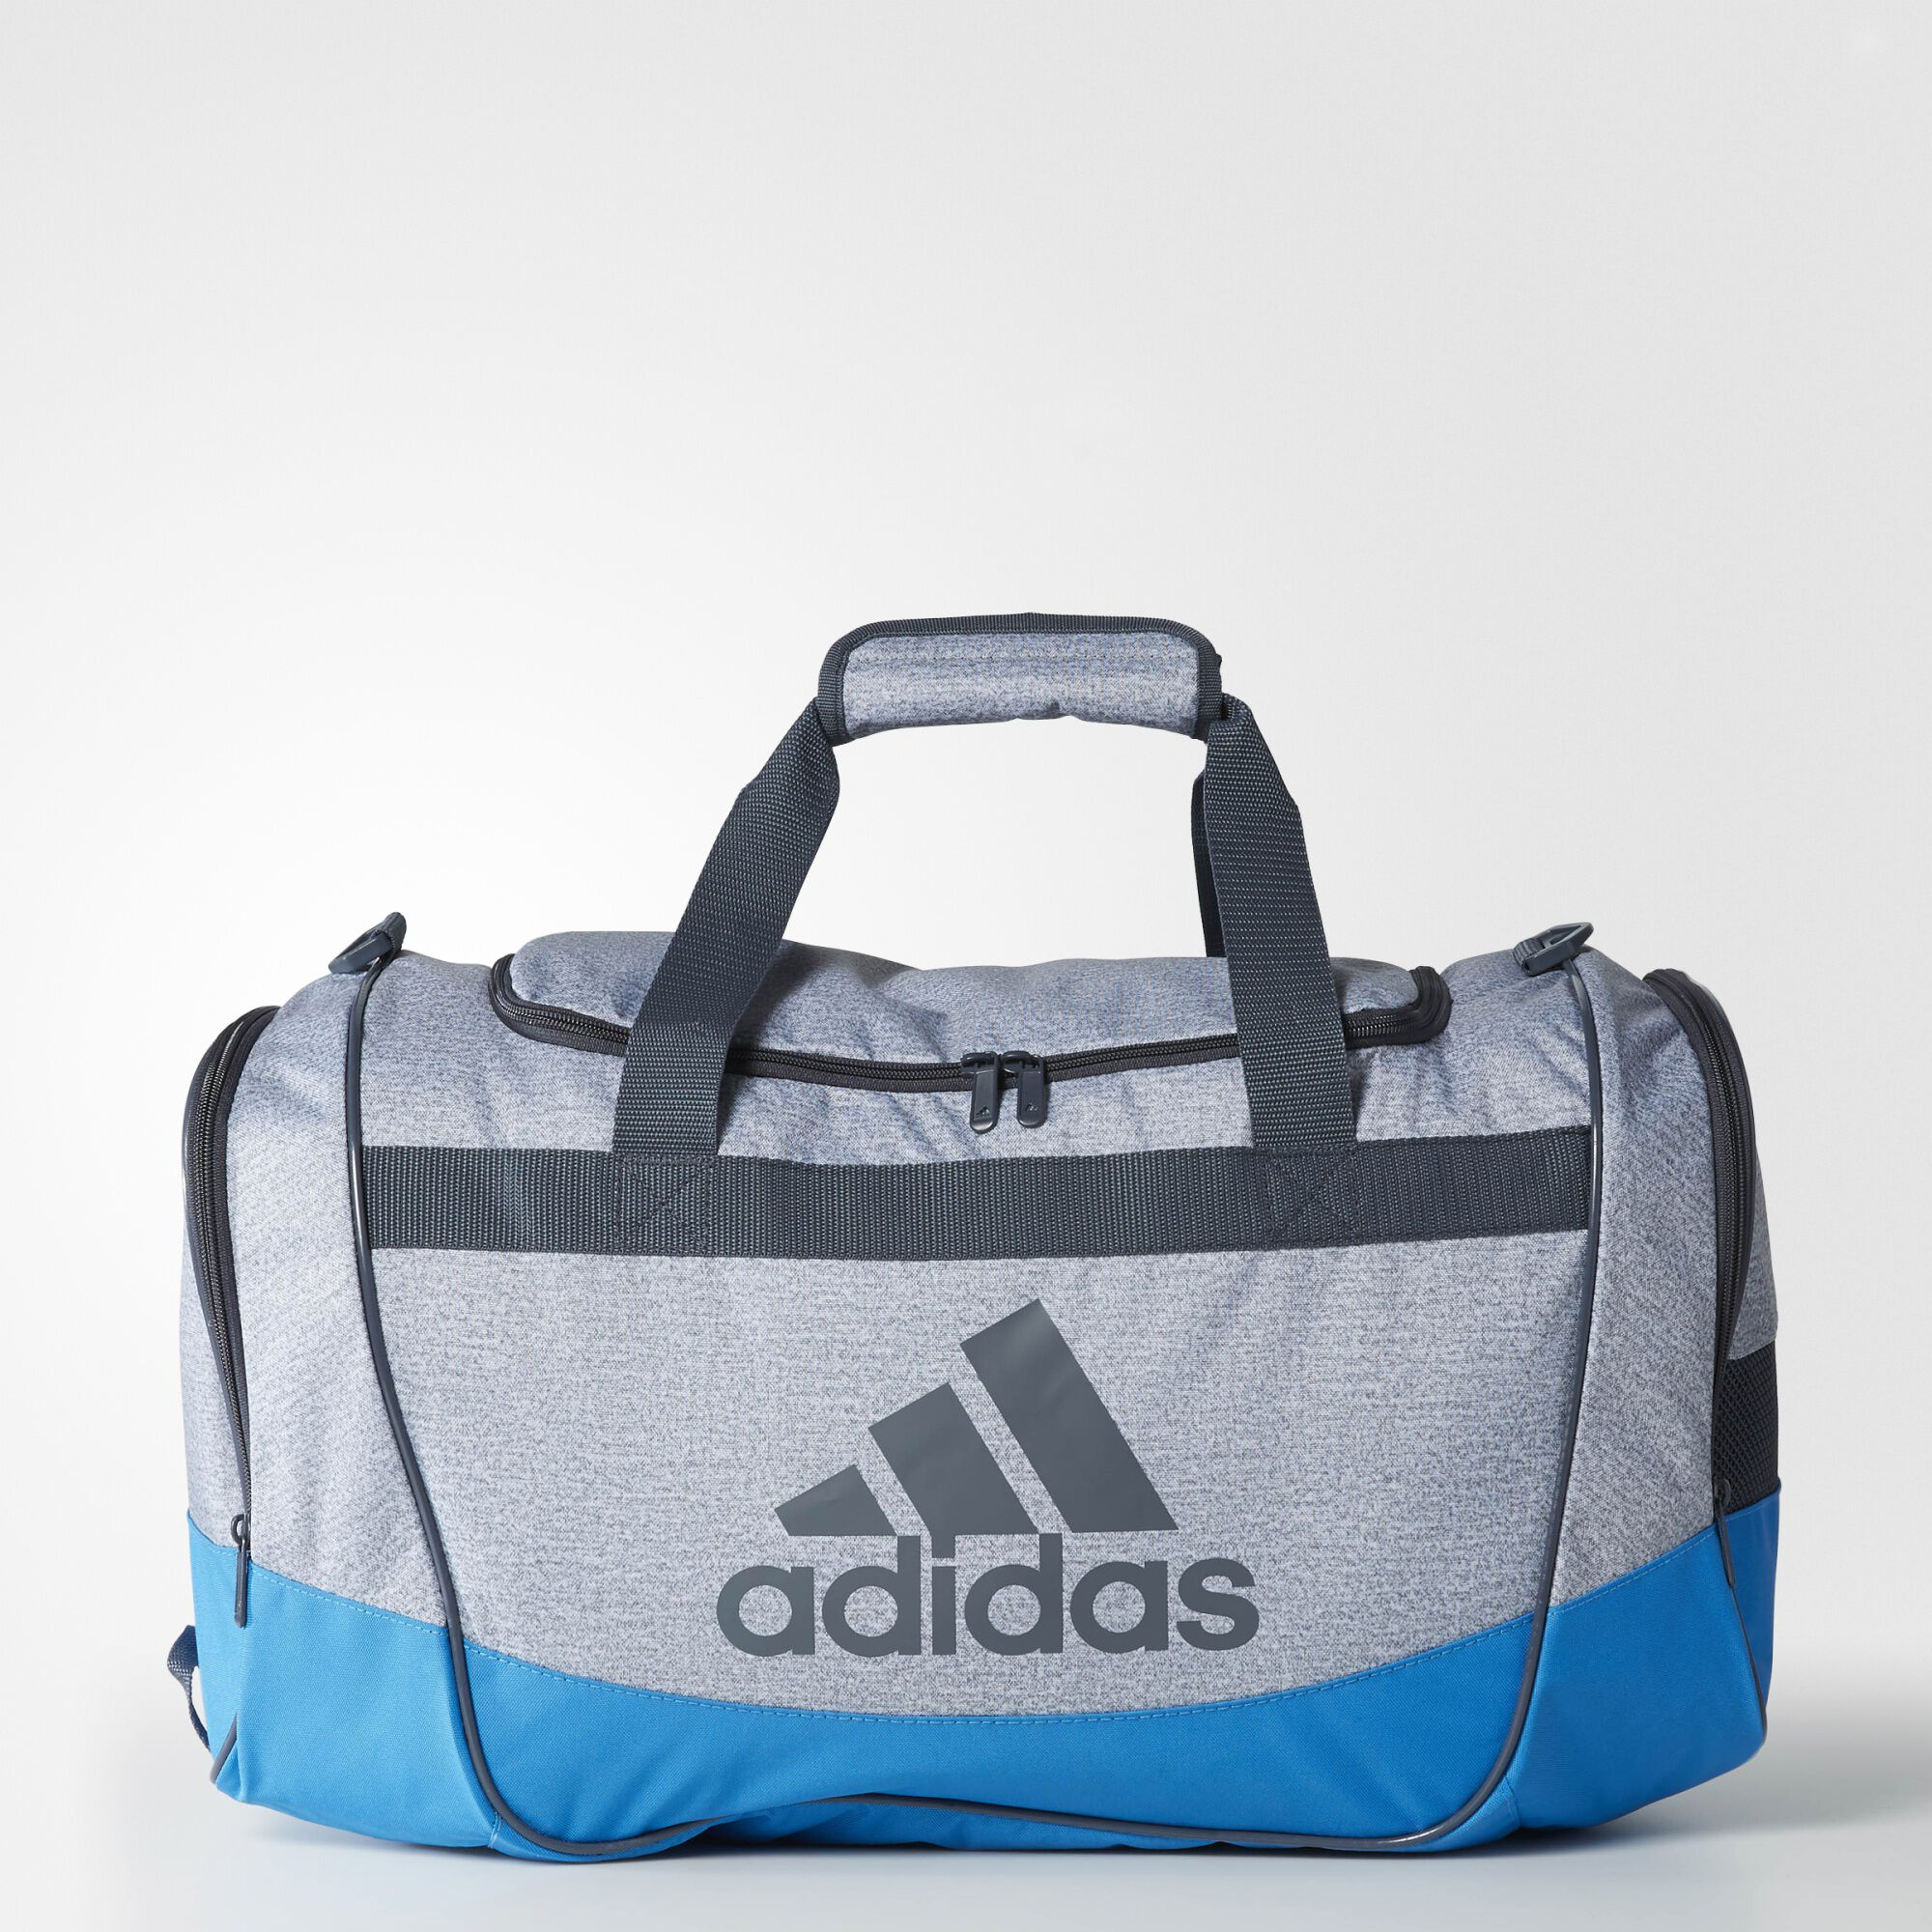 9633eea5ce2d Buy adidas duffle bag blue   OFF51% Discounted